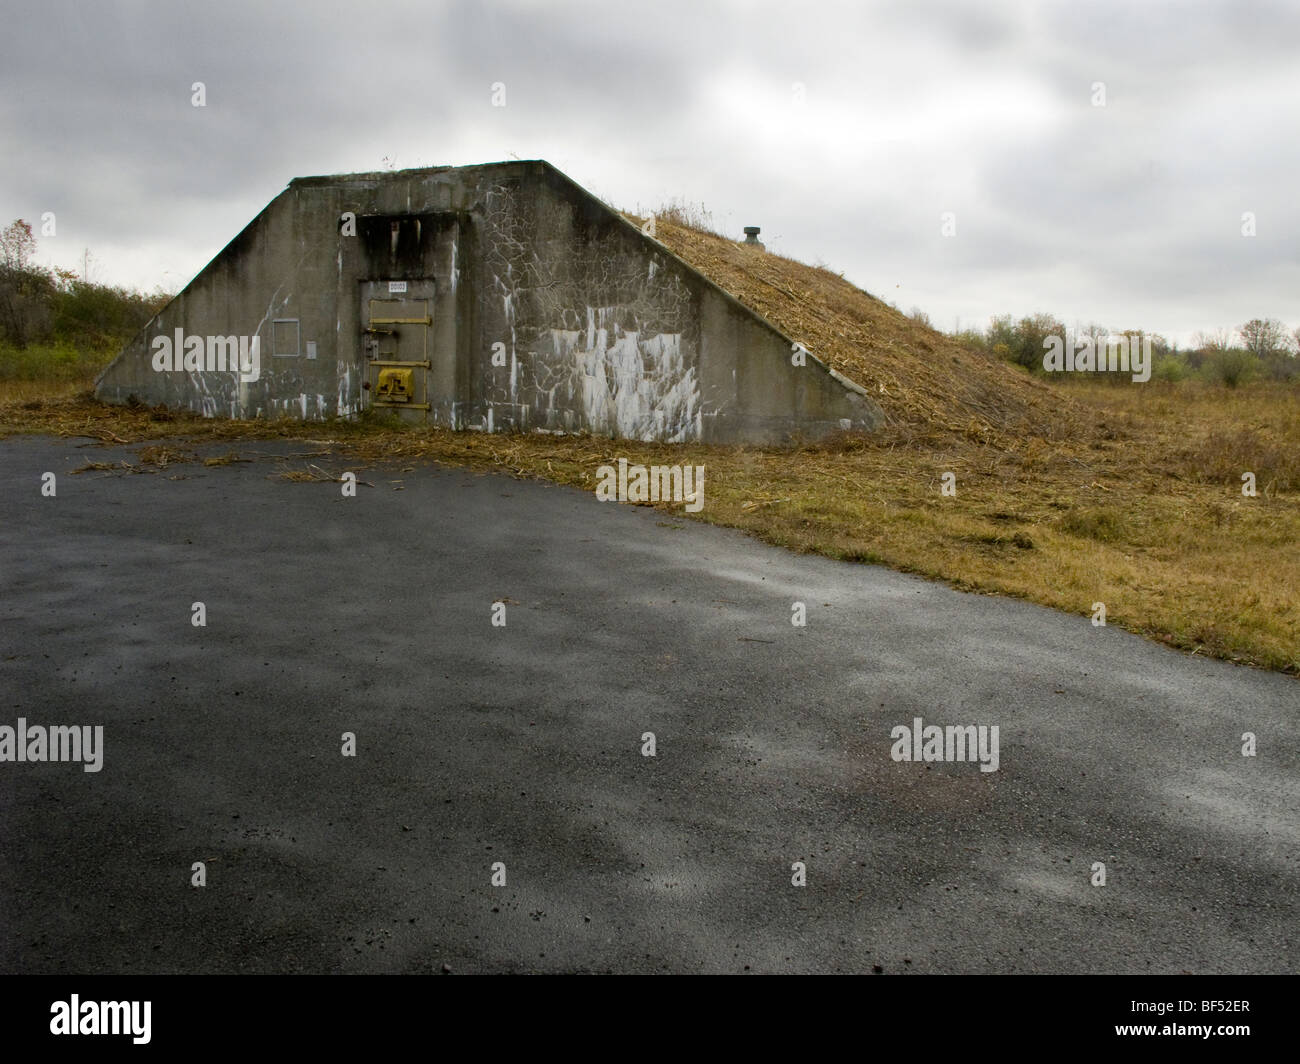 Seneca Army Depot Ny Usa Stock Photo Royalty Free Image